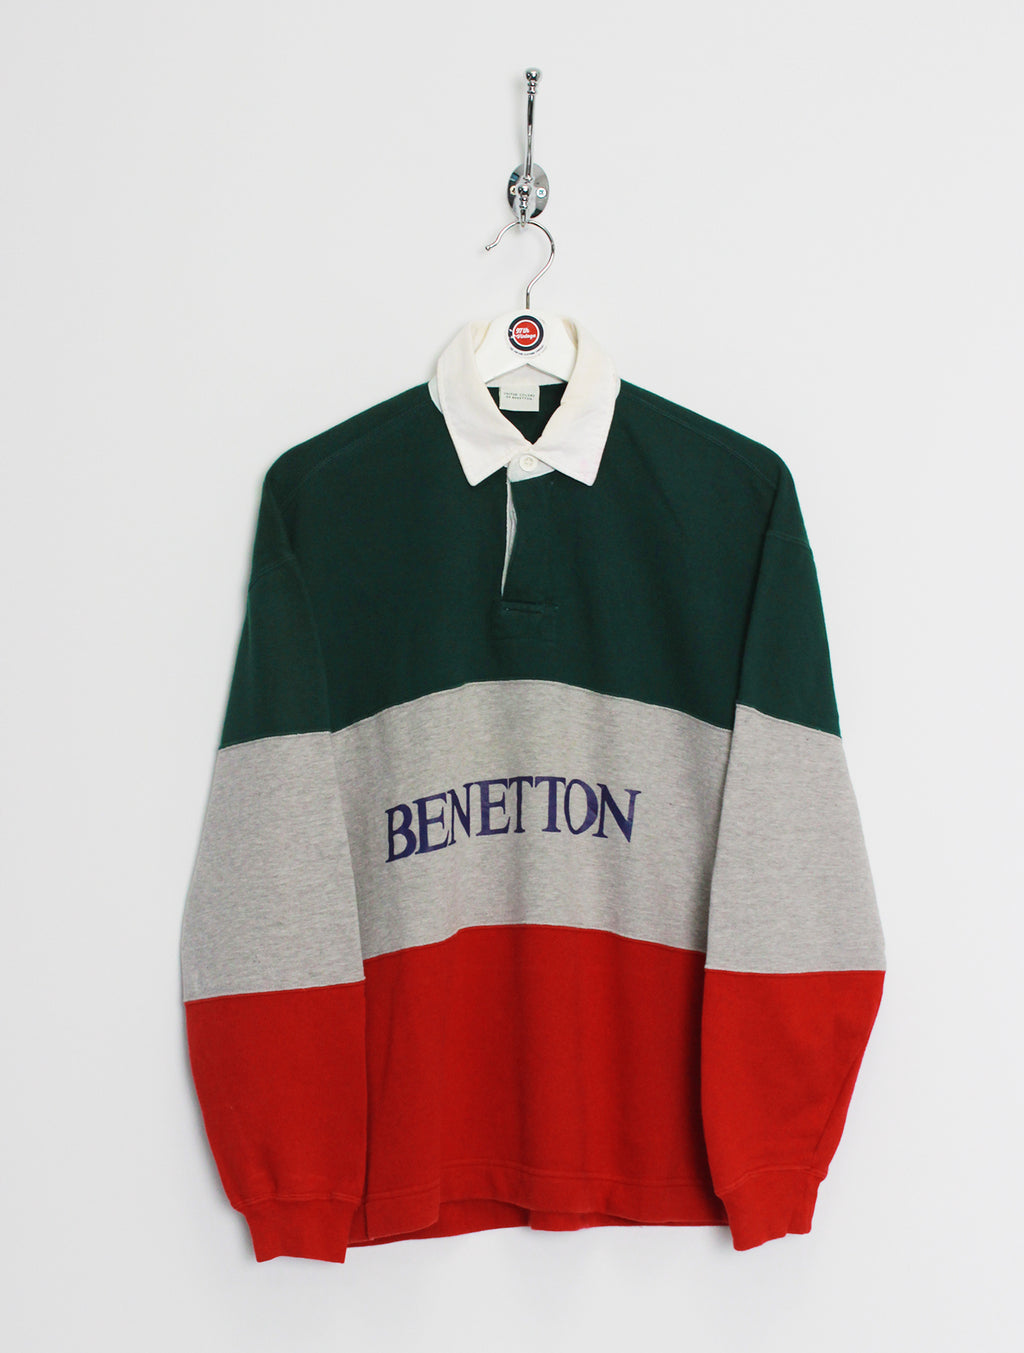 Benetton Polo Shirt (S)